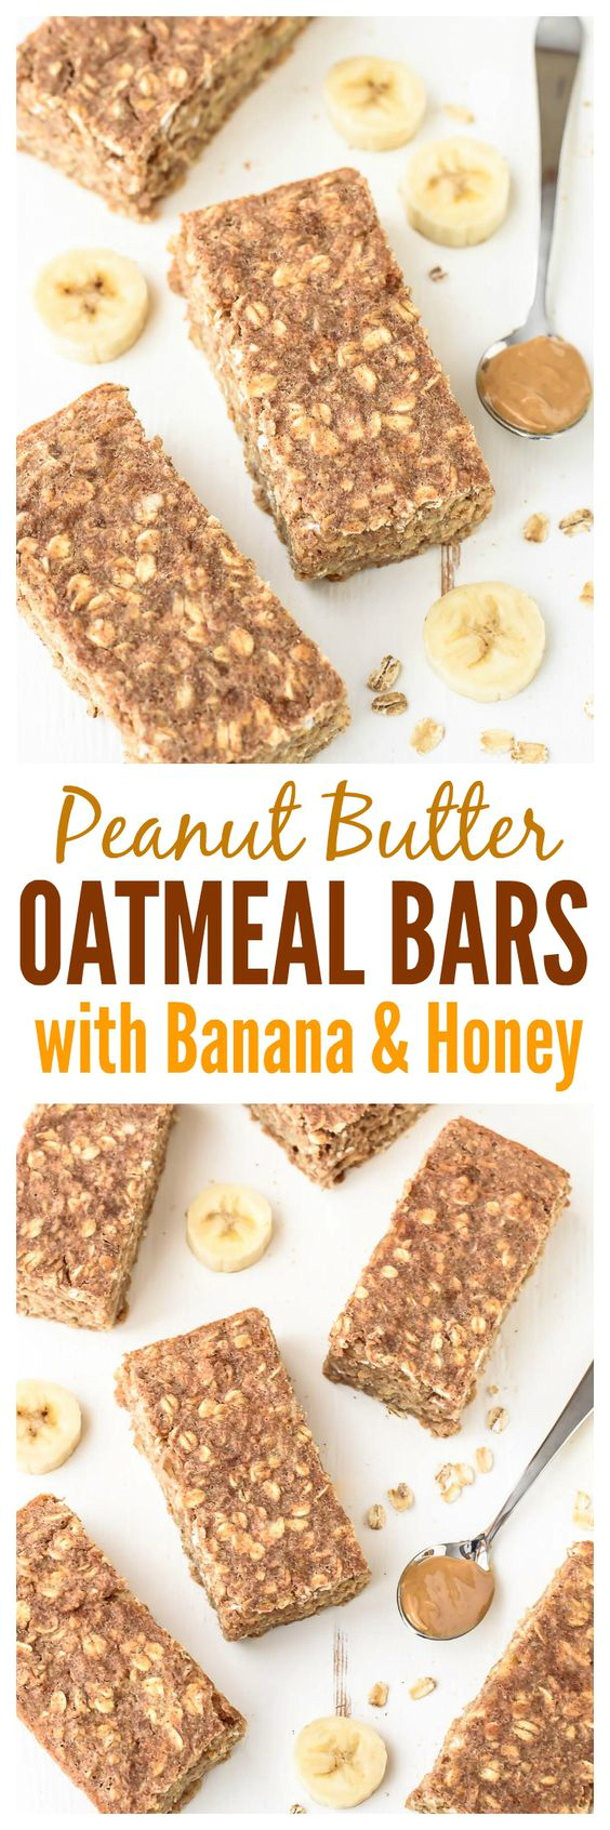 Healthy Snacks - Peanut Butter Oatmeal Bars with Banana and Honey Recipe via Well Plated by Erin